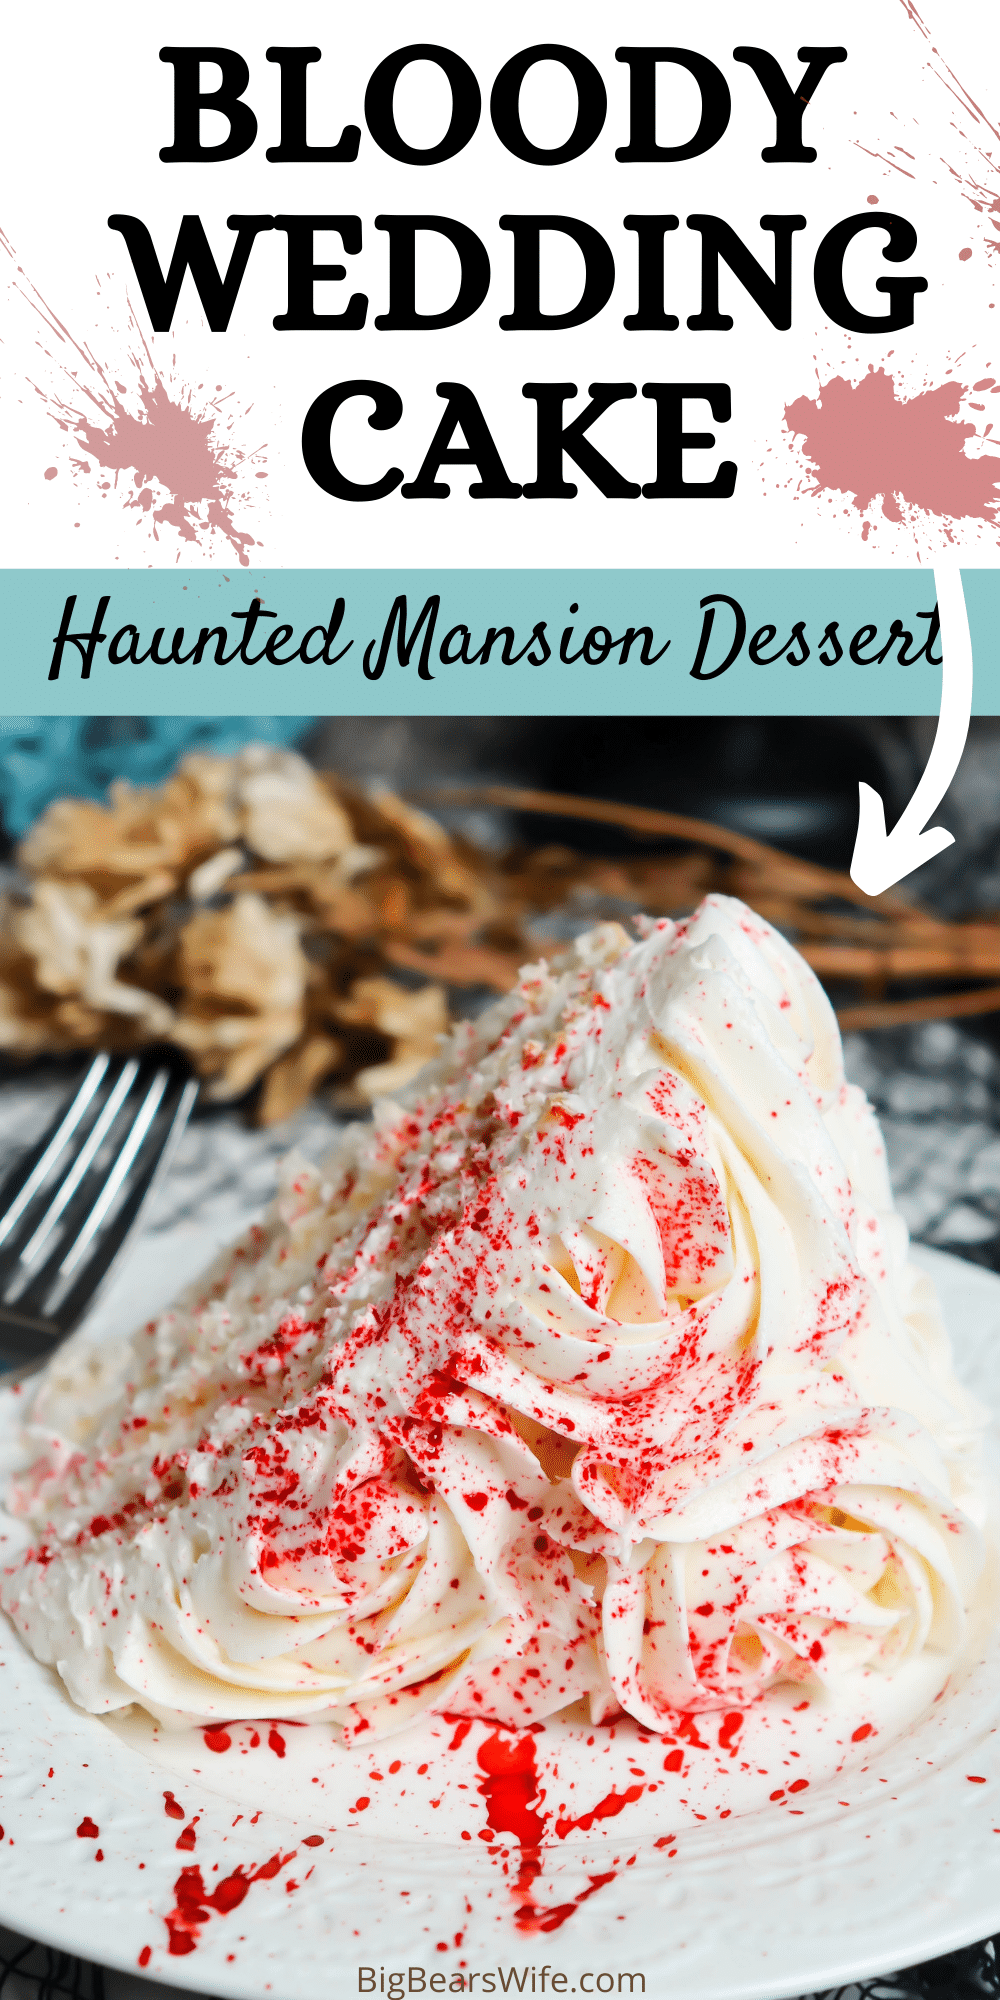 Haunted Mansion Bloody Wedding Cake - This Halloween dessert is inspired by the Haunted Mansion at Disney World and Constance Hatchaway, the ghostly bride there that murdered her husbands!  A white wedding style cake gets a splatter of (red food coloring) blood as the Haunted Mansion bride uses a hatchet to  become a widow once again.   via @bigbearswife